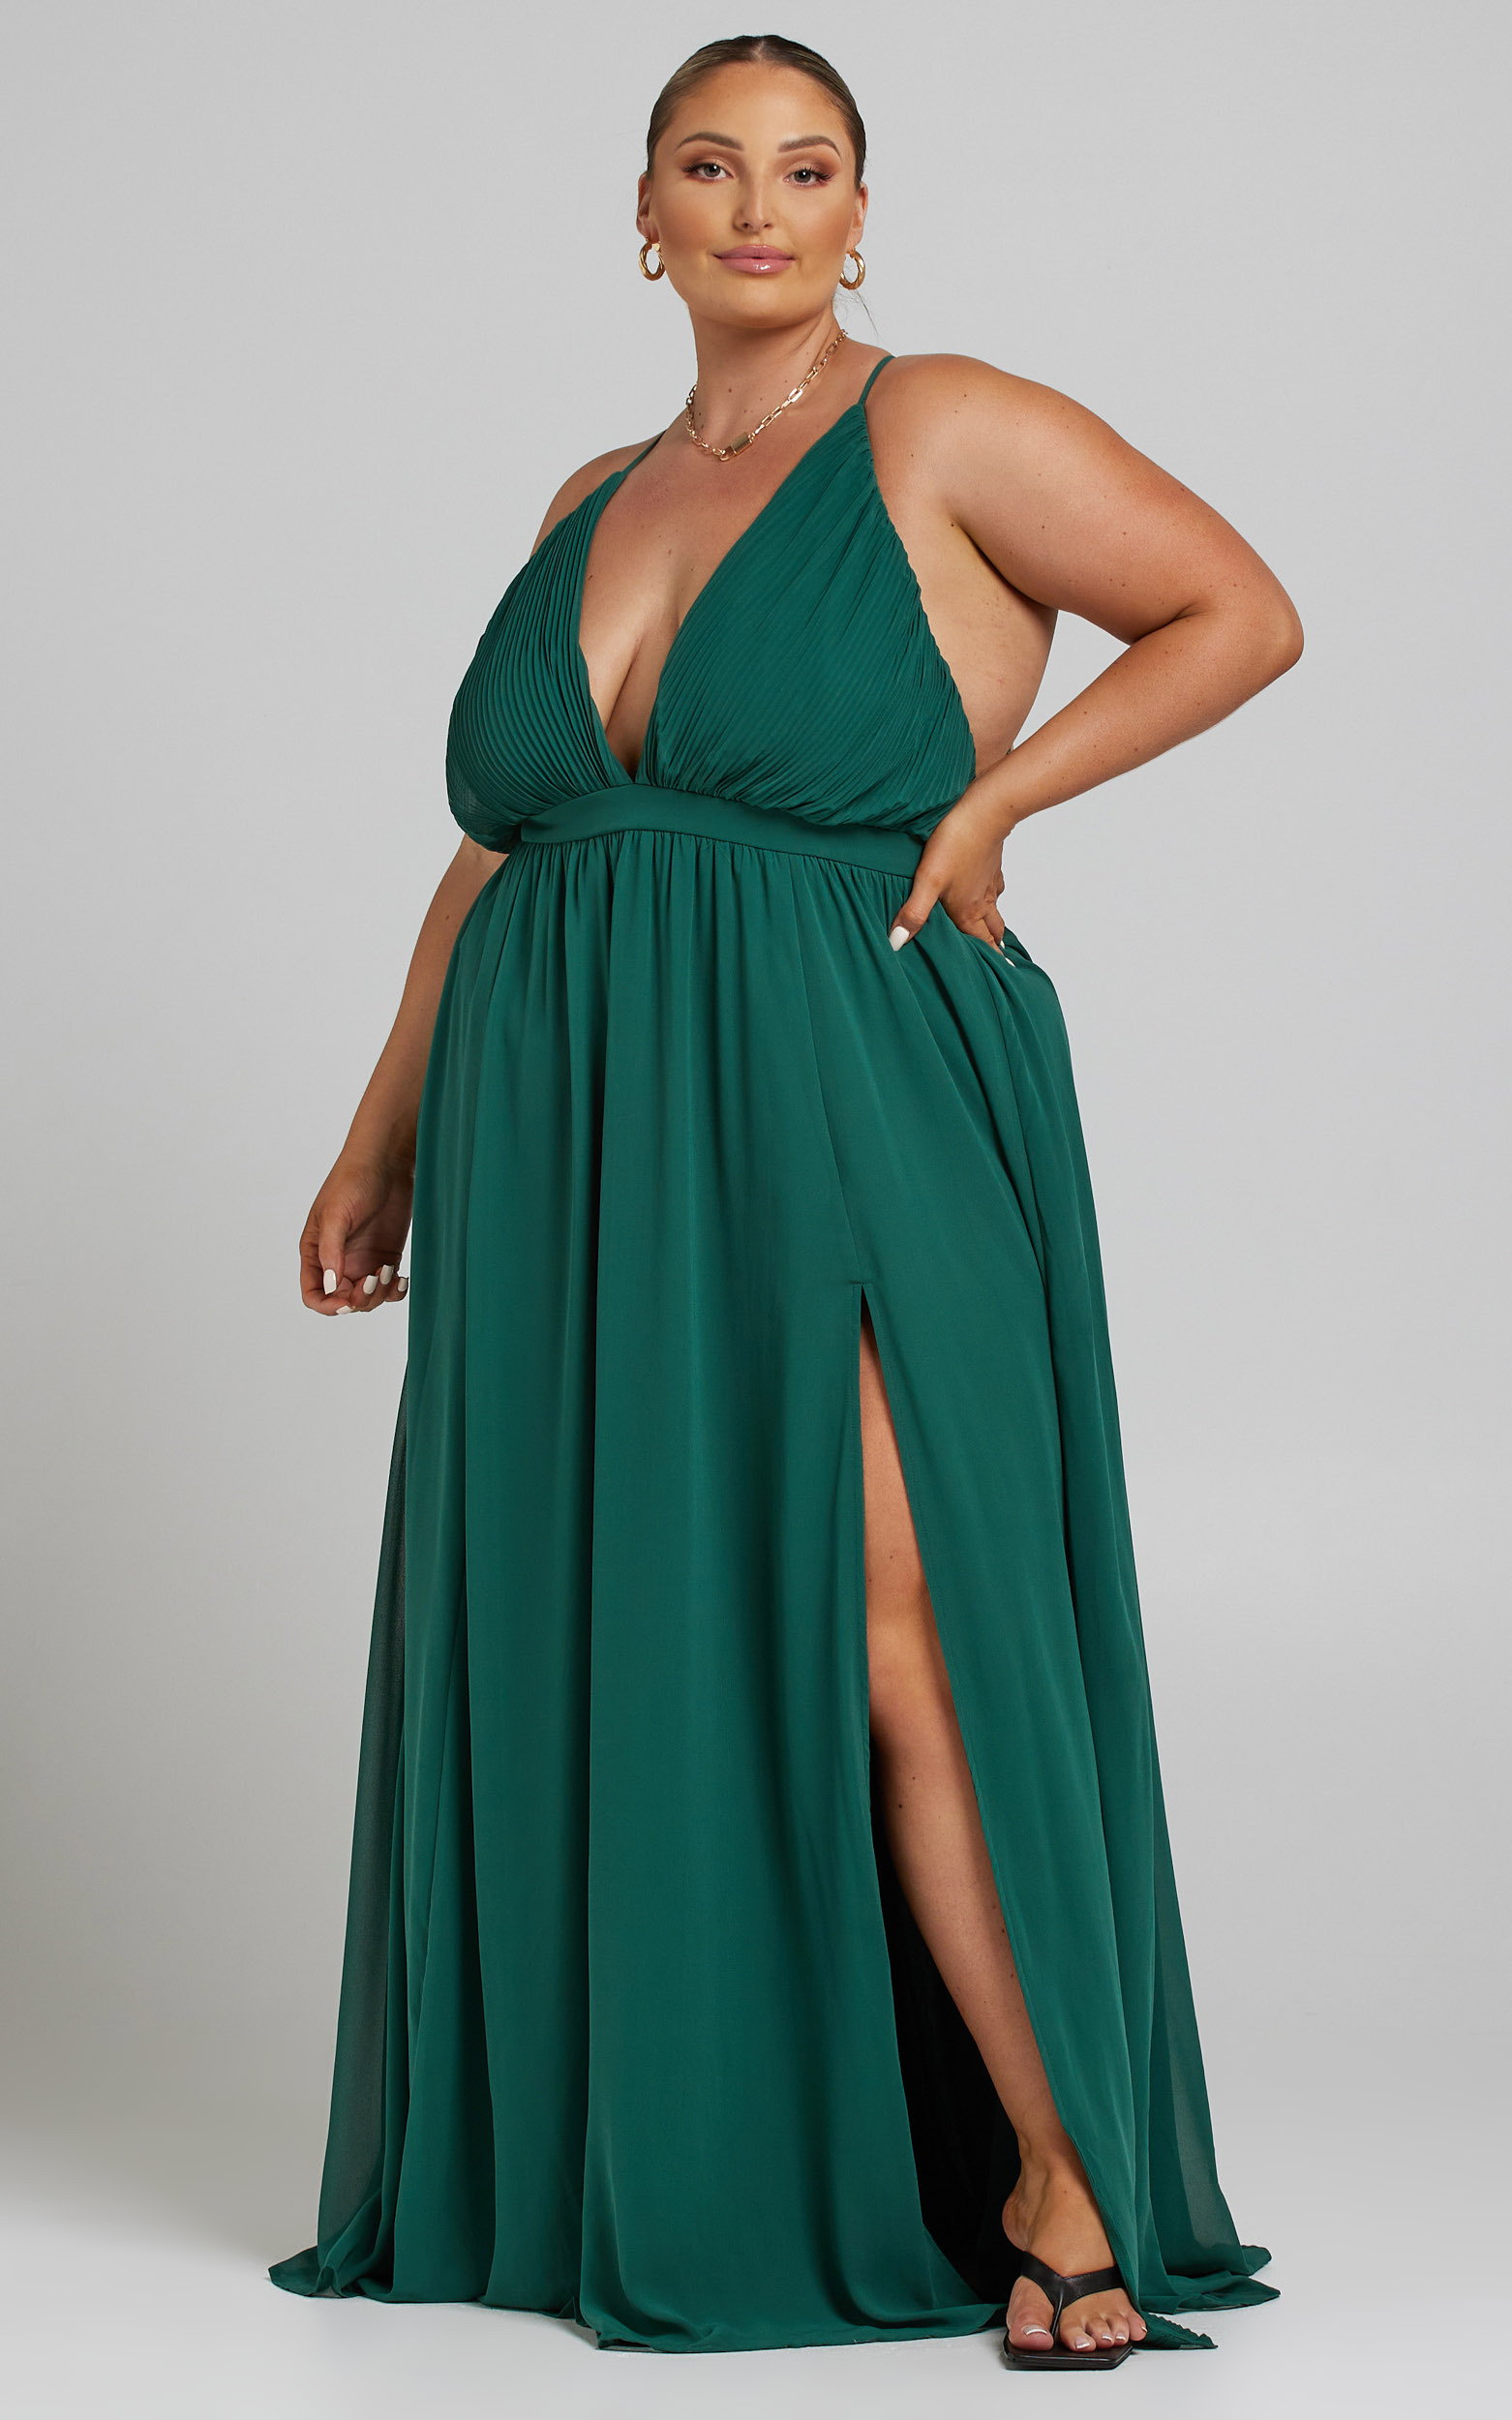 Shes A Delight Maxi Dress in Emerald - 06, GRN2, hi-res image number null